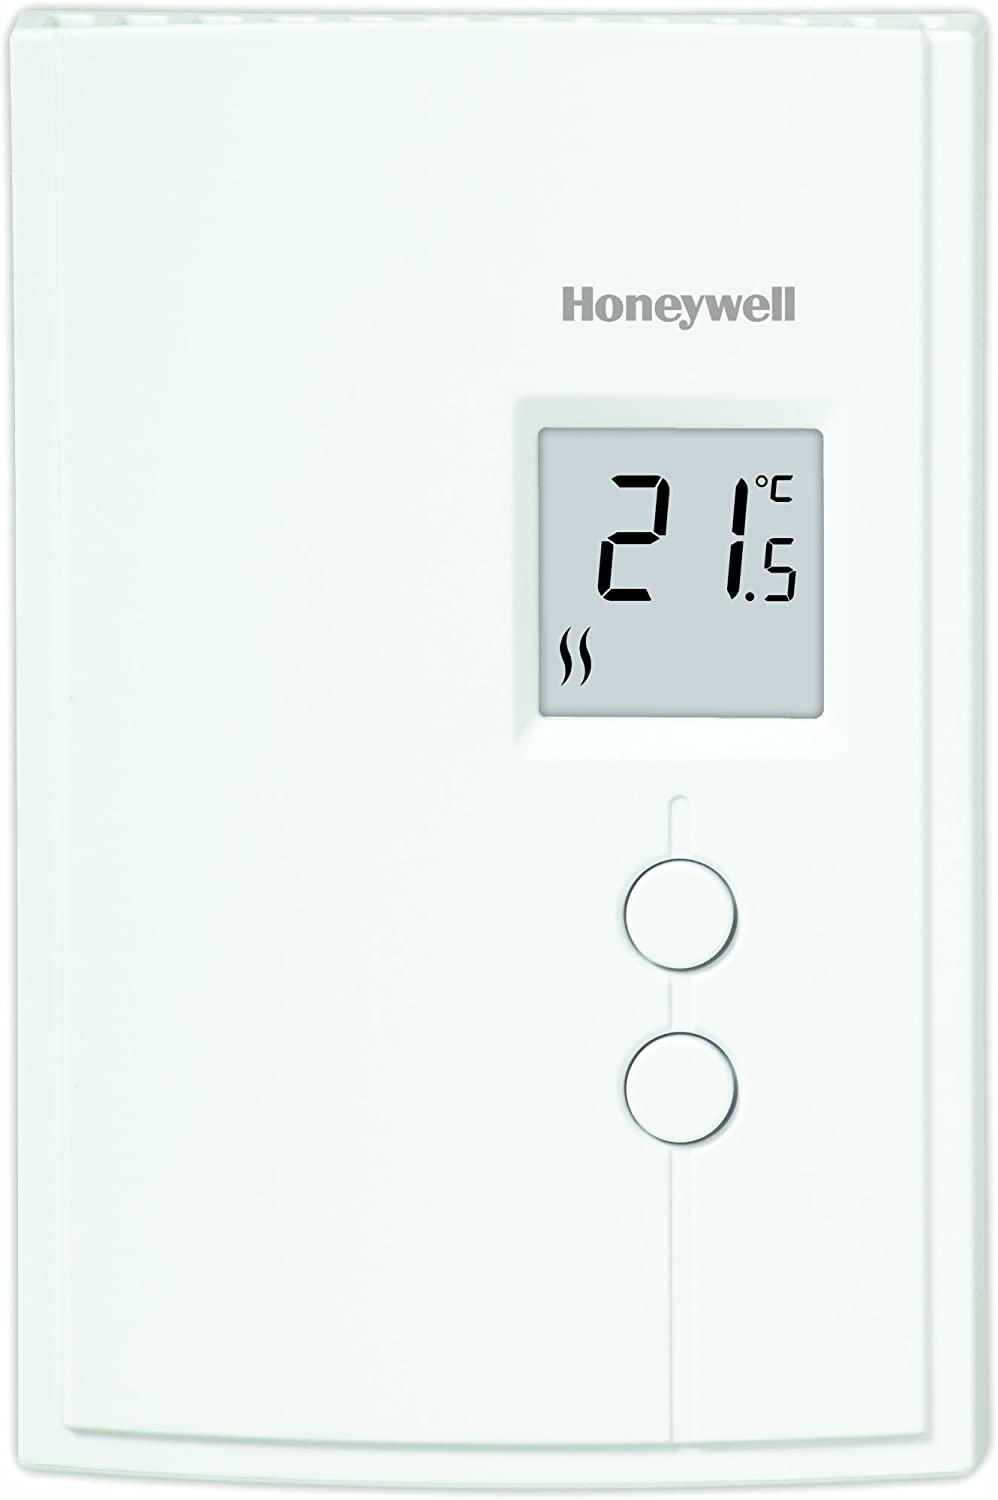 Honeywell RLV3120A1005/E1 Digital Non-Programmable Thermostat for ...